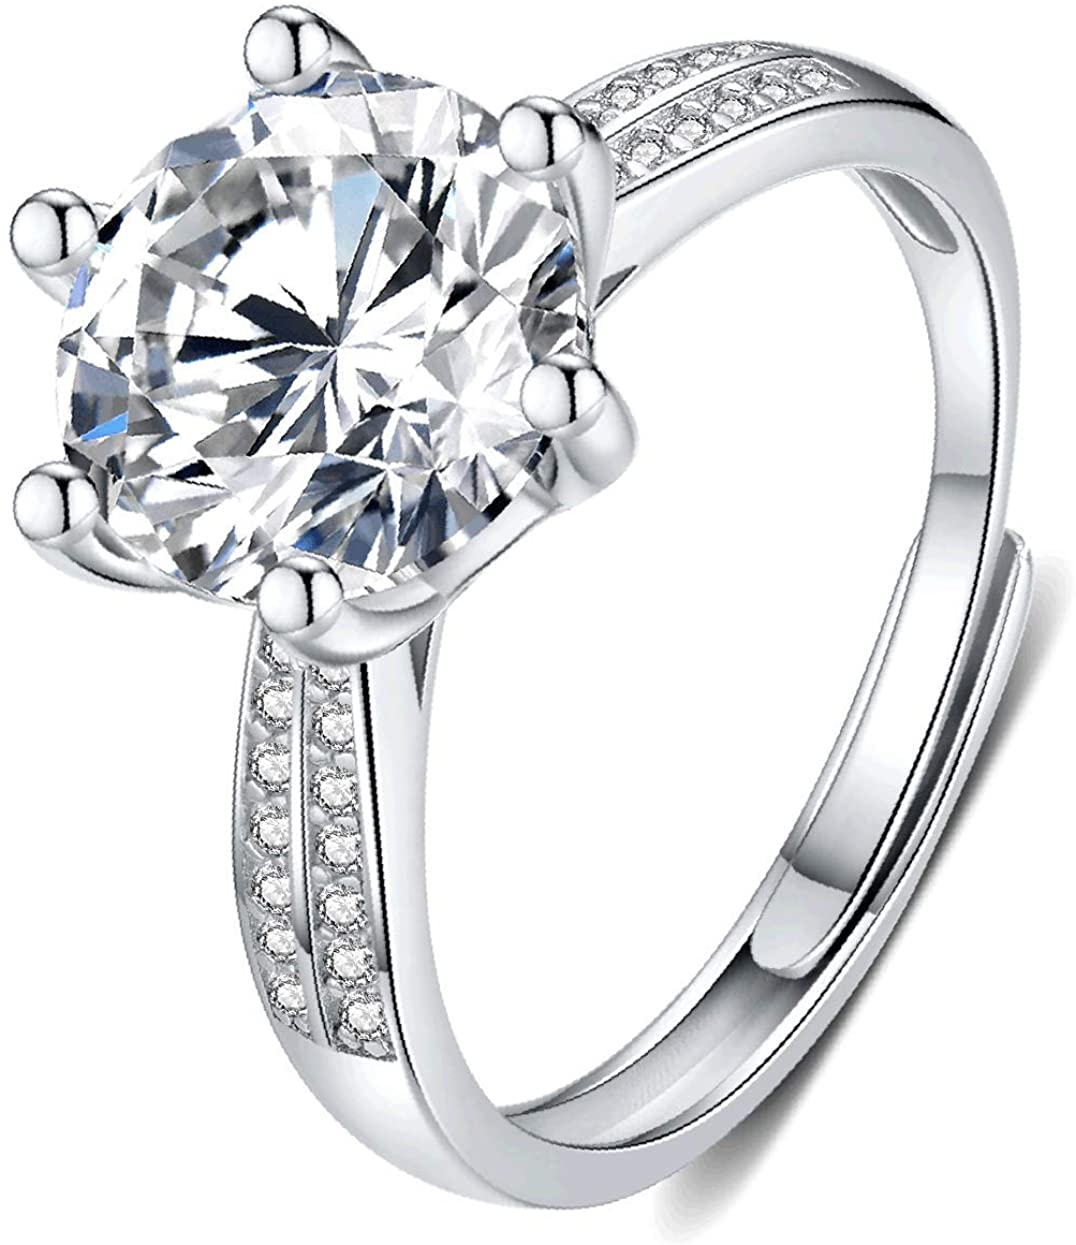 Moissanite Engagement Ring Center 2CT 8mm 18K White Gold Plated silver D Color Ideal Cut Diamond Wedding Ring for Women with Certificate of Authenticity, One Size Adjustable